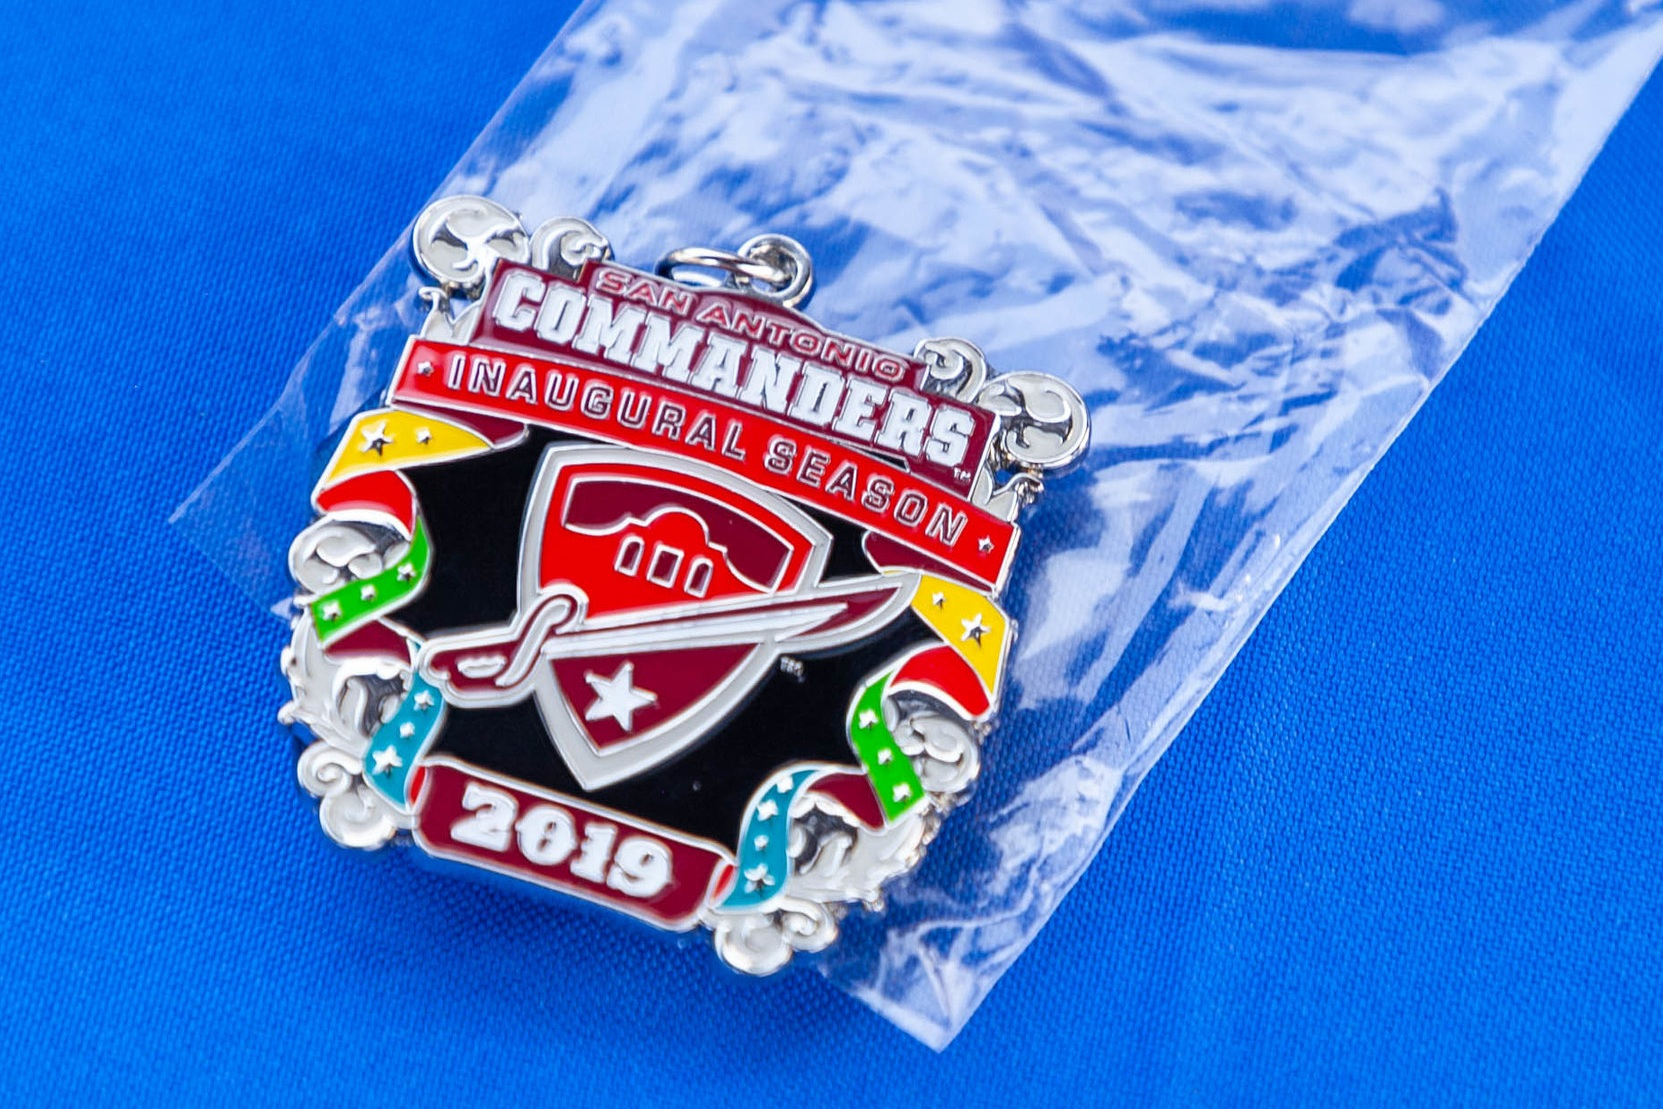 Commanders Fiesta medals were available at the event. (Photo by:  Luis Vazquez , Contributing Reporter - San Antonio Sentinel)